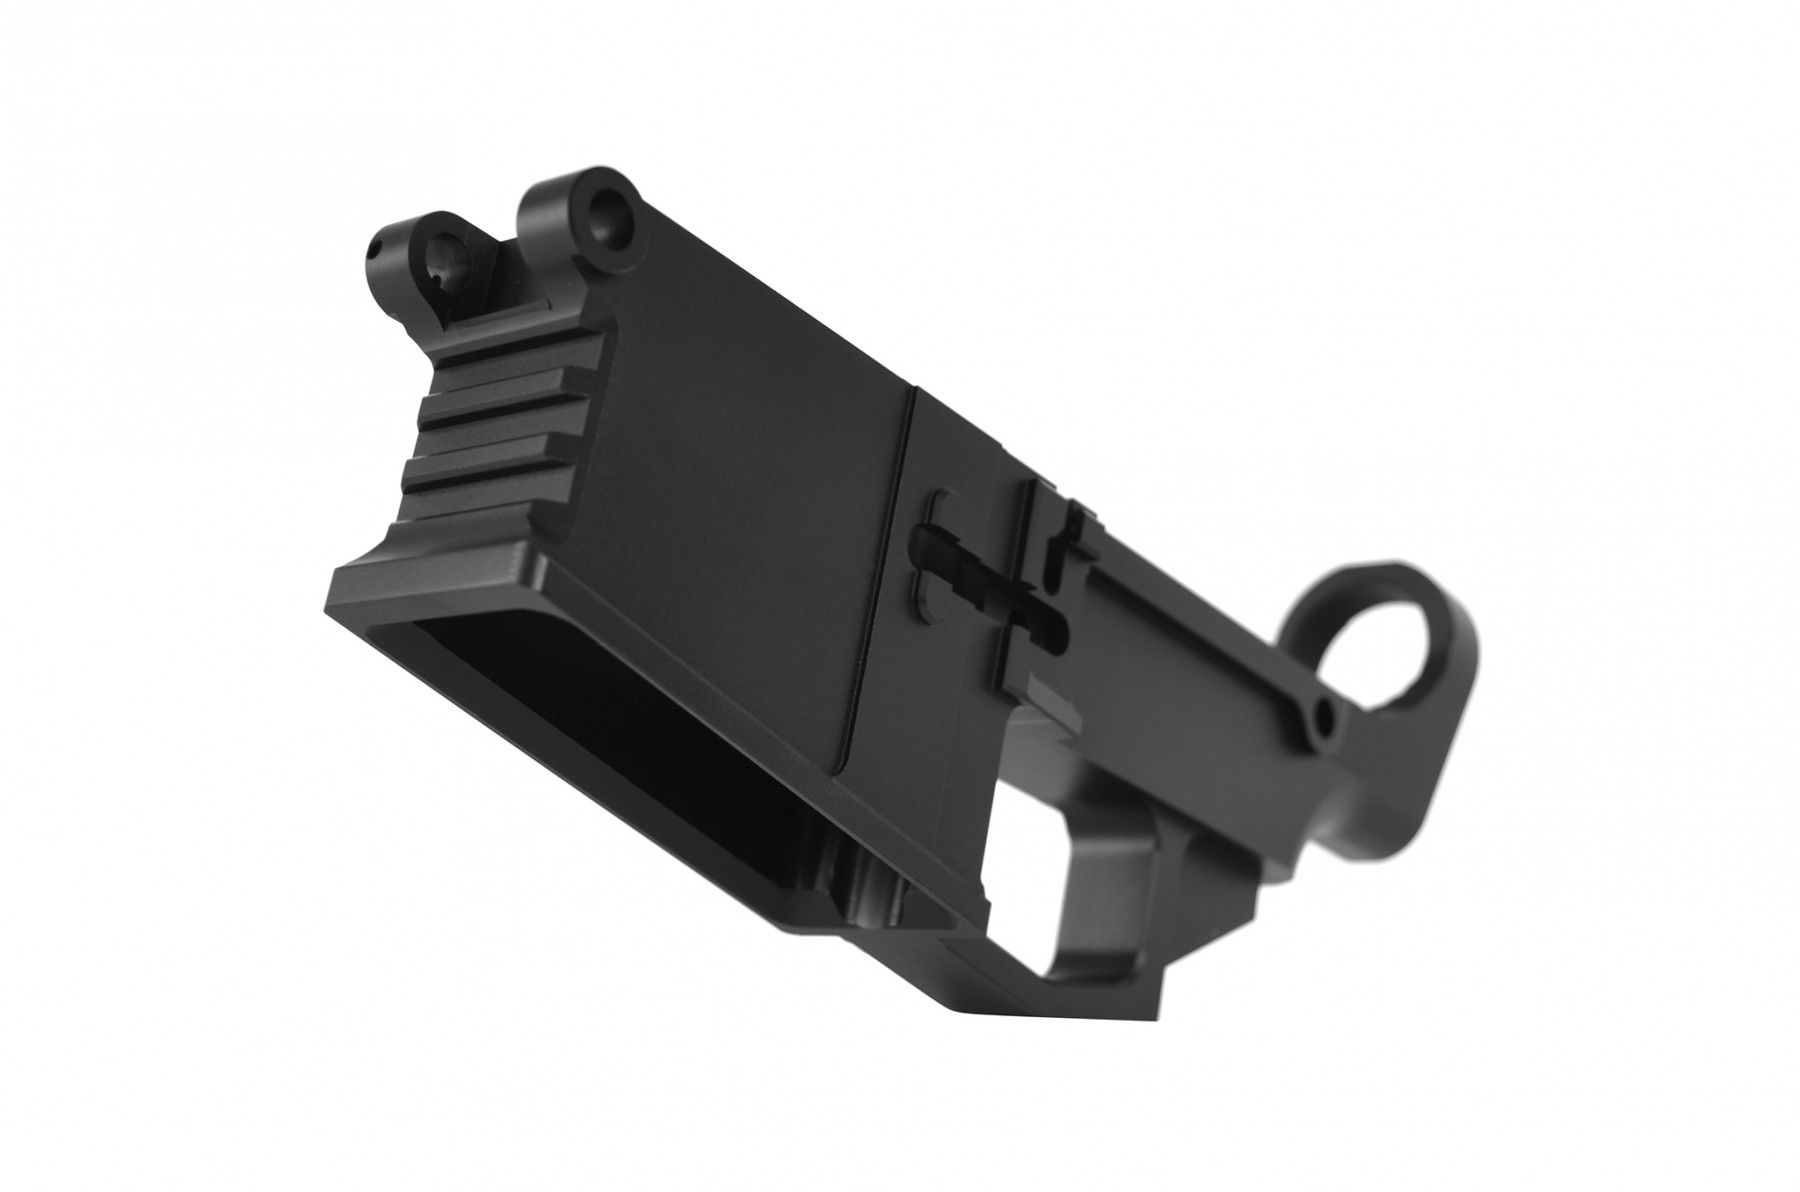 LR 308 AR 10 80% Lower Receiver